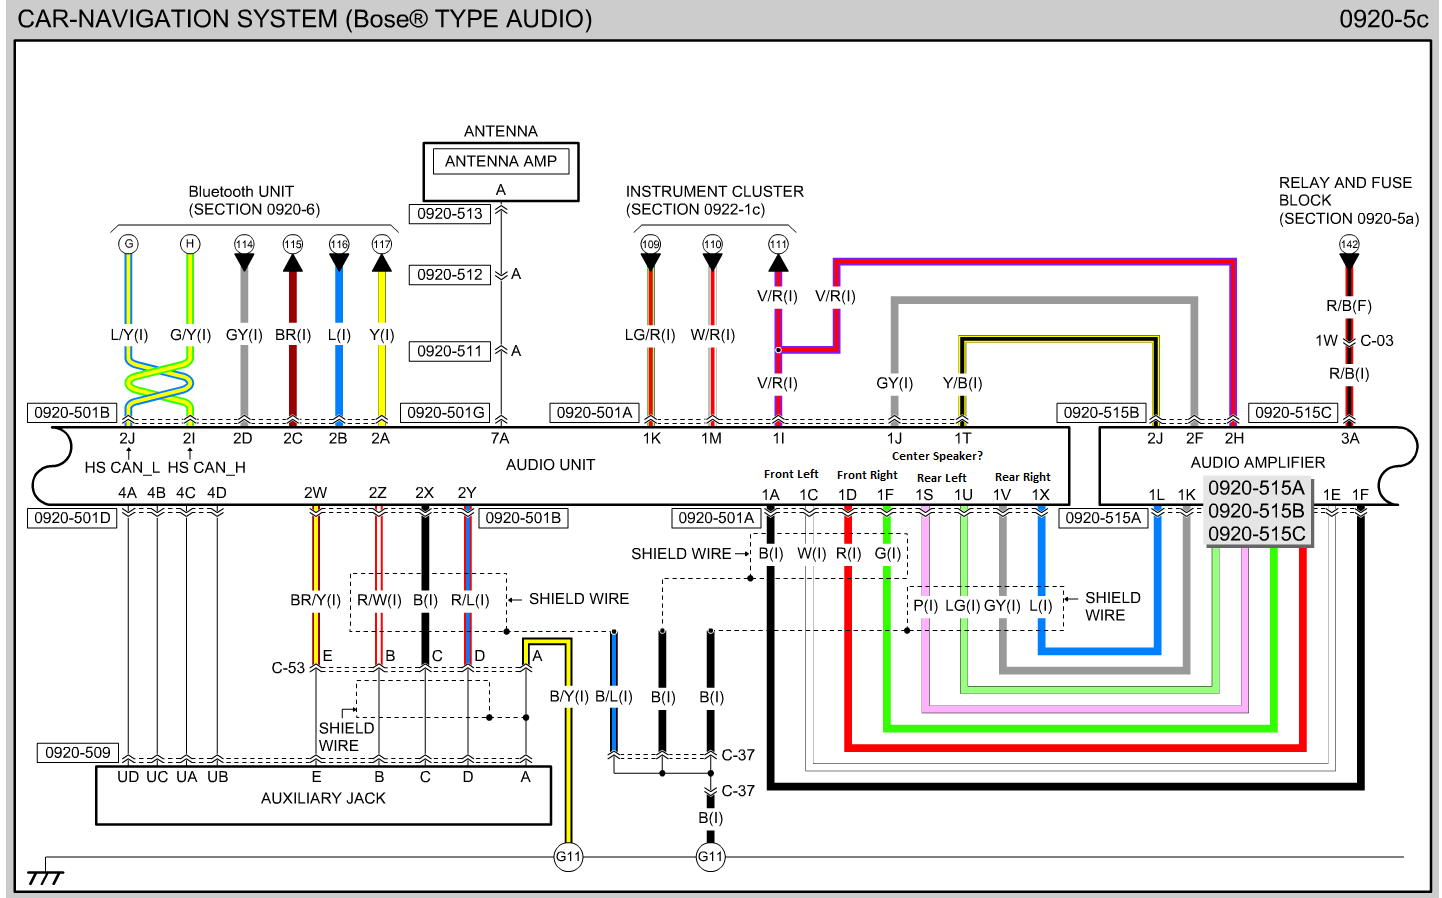 DIAGRAM] 2010 Mazda Cx 9 Wiring Diagram FULL Version HD Quality Wiring  Diagram - ELECTROCARDIAGRAM.BELLEILMERSION.FRelectrocardiagram.belleilmersion.fr